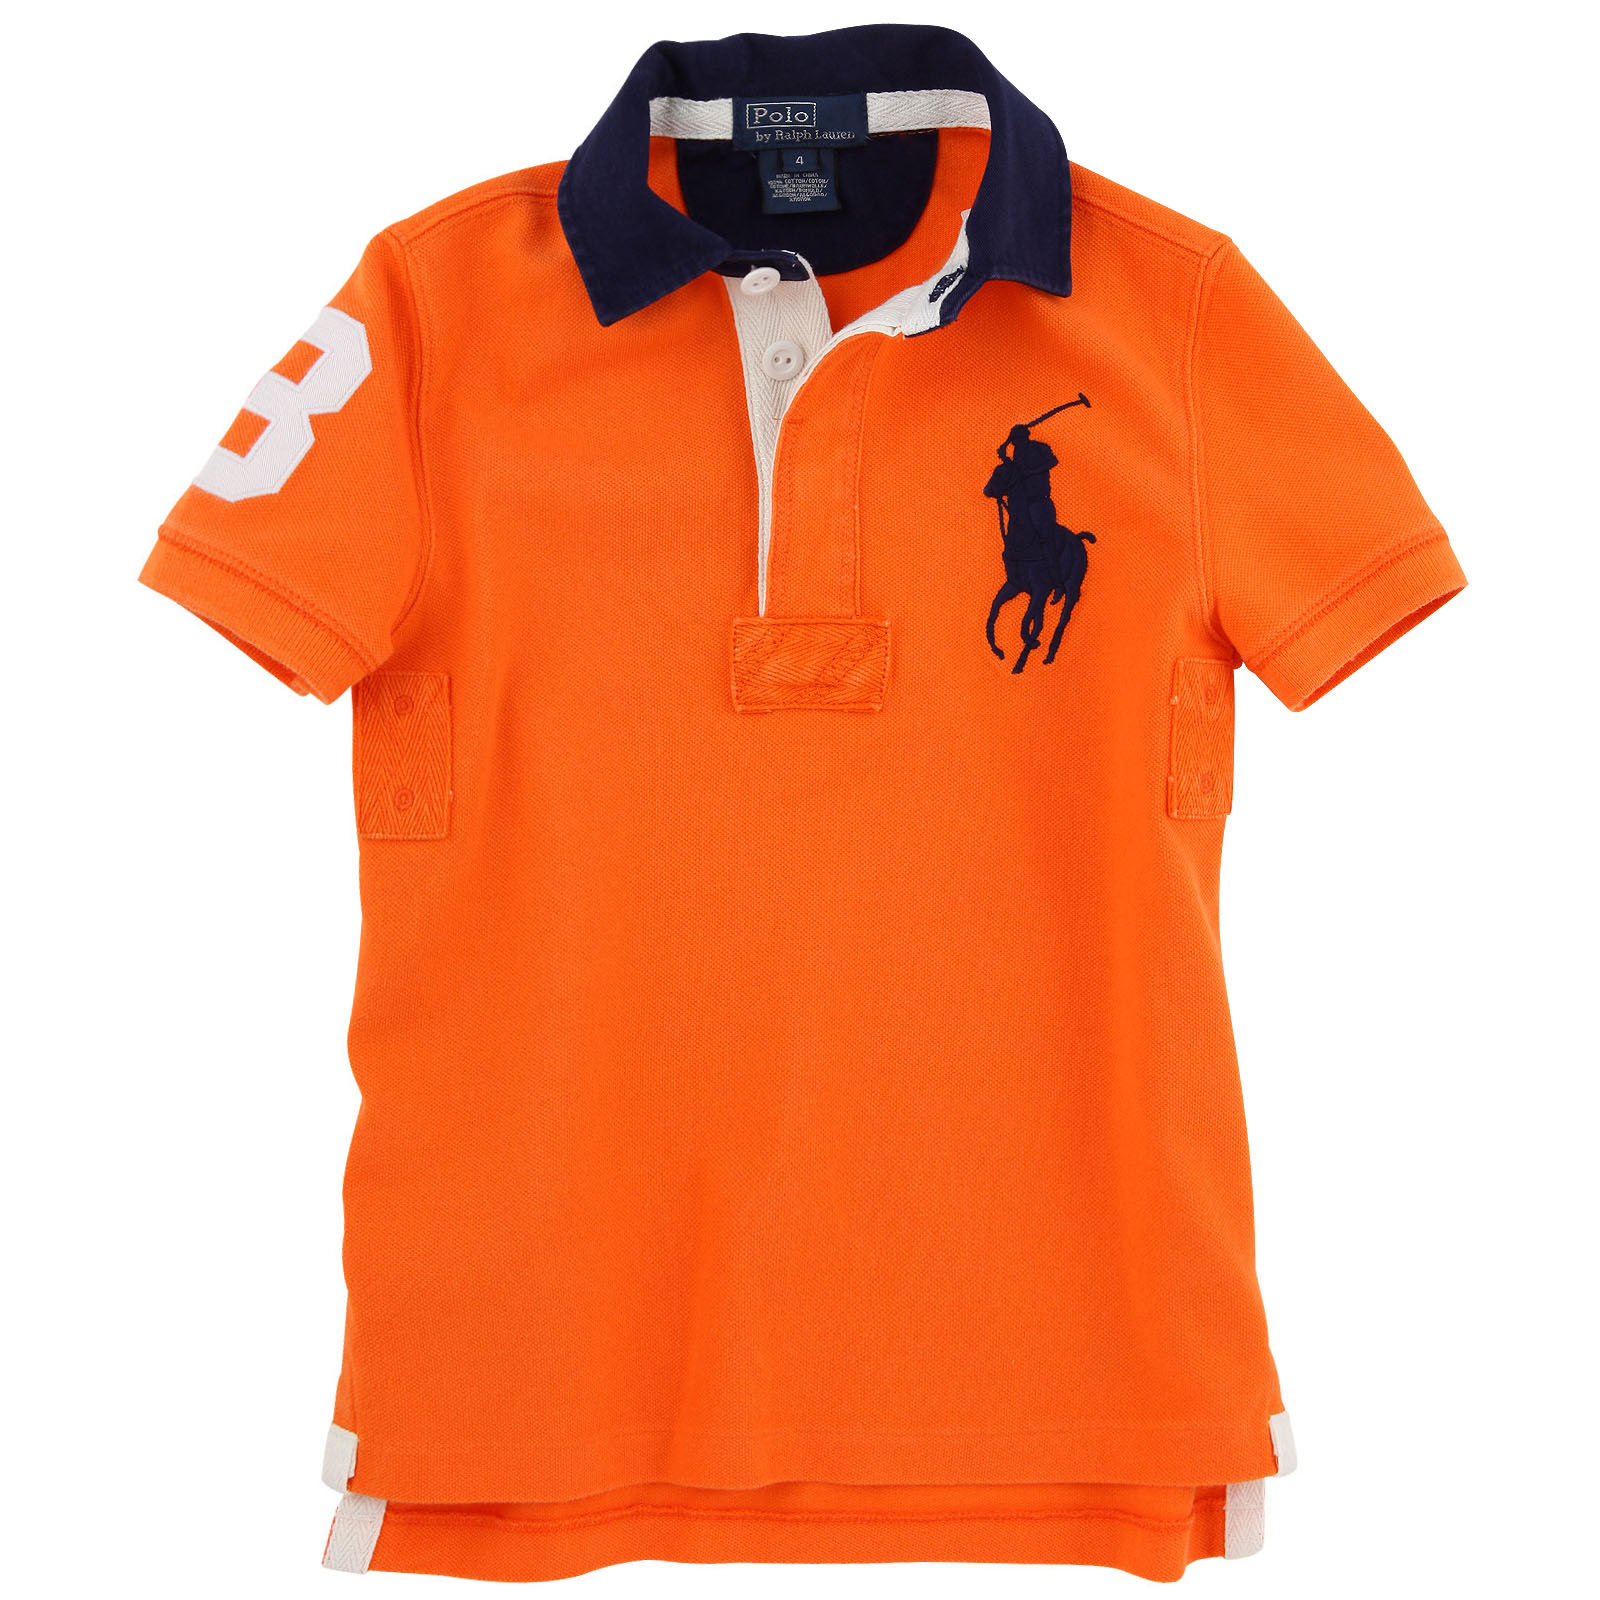 Shirts are available in all shapes, sizes and colors at affordable prices. Get Amazing Collection of Polo Shirts for Men at Obeezi JavaScript seems to be disabled in your browser.